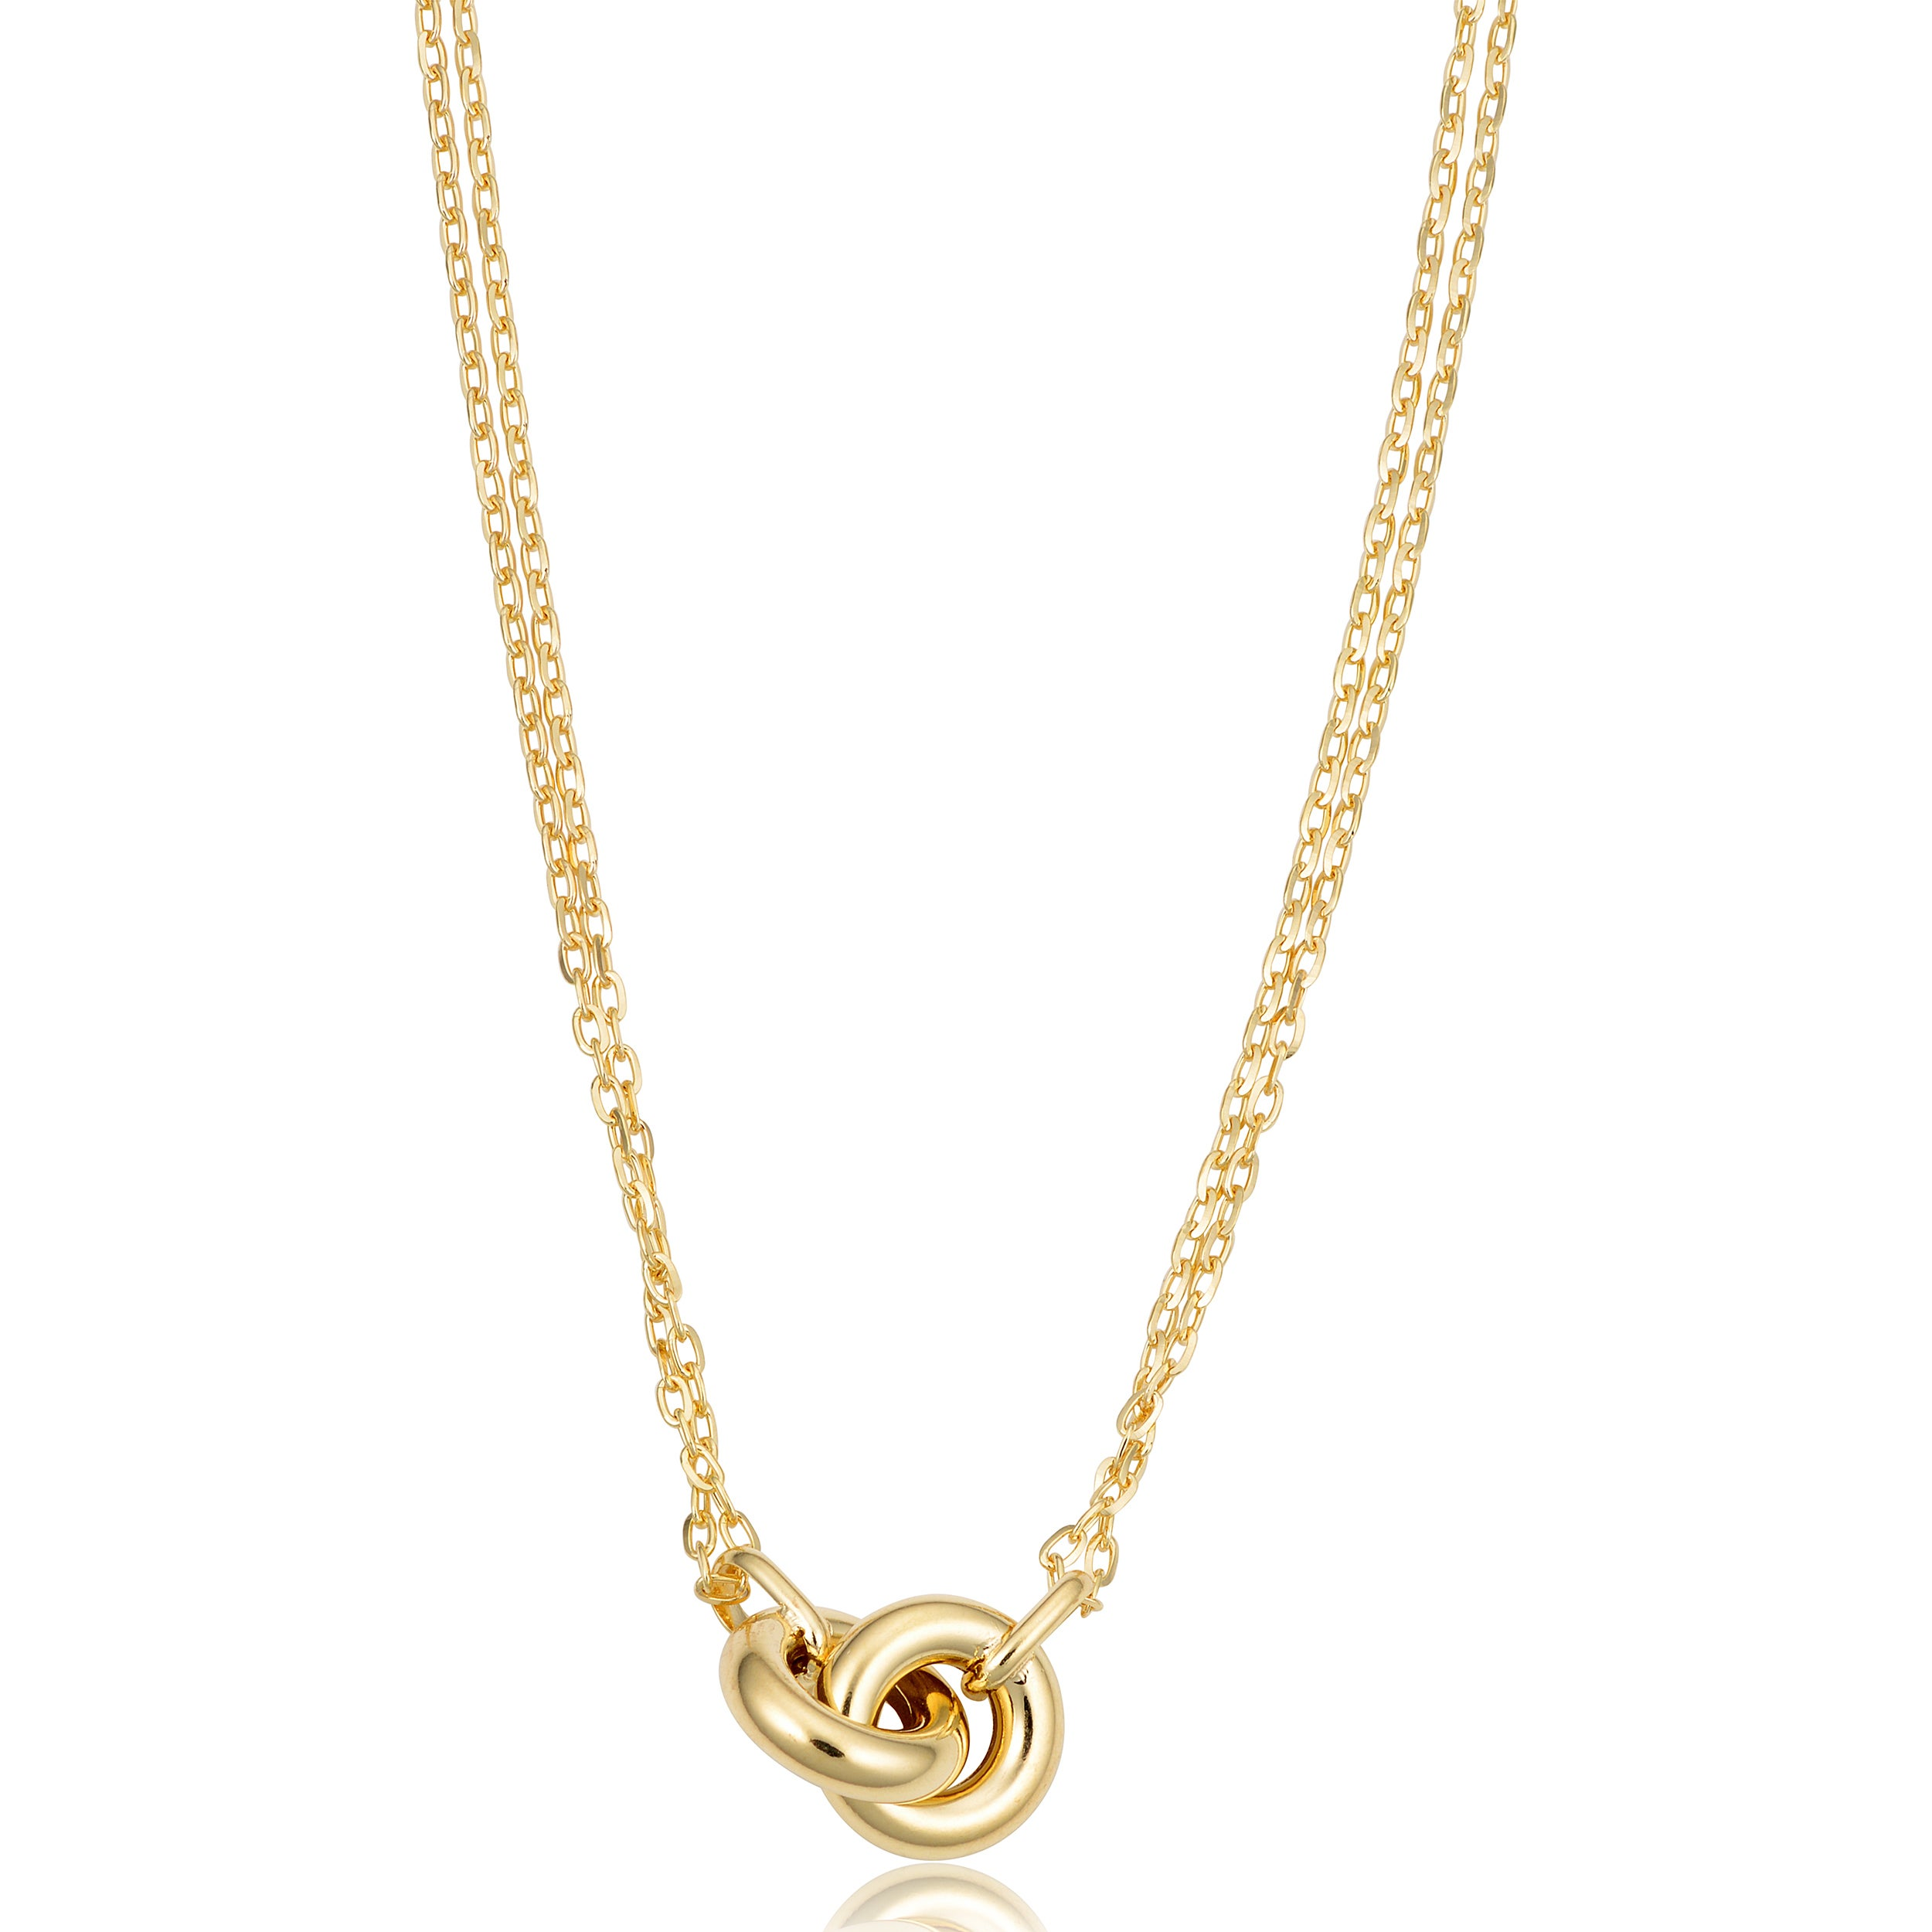 Shop fremada italian 18k yellow gold double strand infinity rings shop fremada italian 18k yellow gold double strand infinity rings necklace 18 inches free shipping today overstock 16303860 aloadofball Choice Image